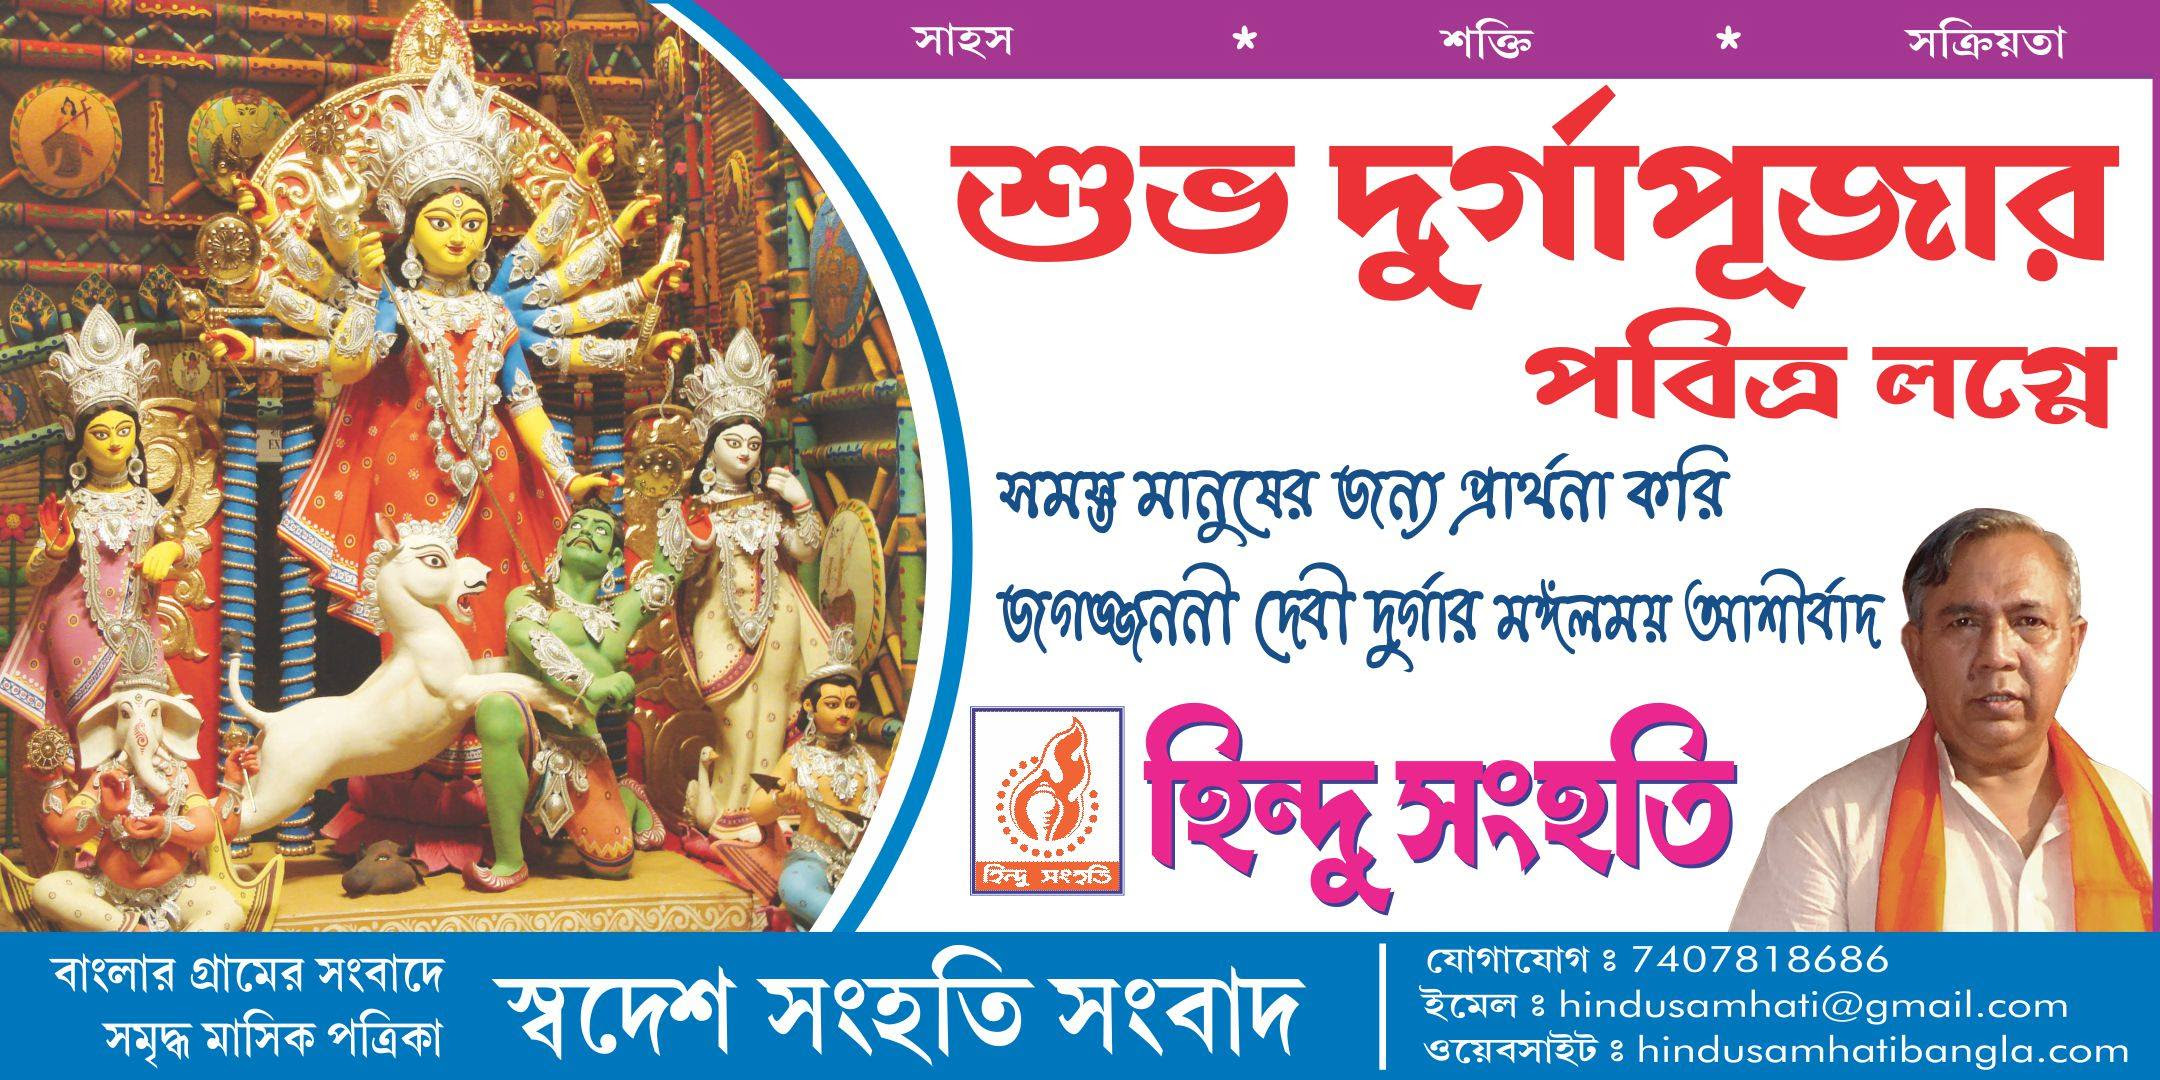 Durga Puja Greetings And Inspiring Updates From West Bengal